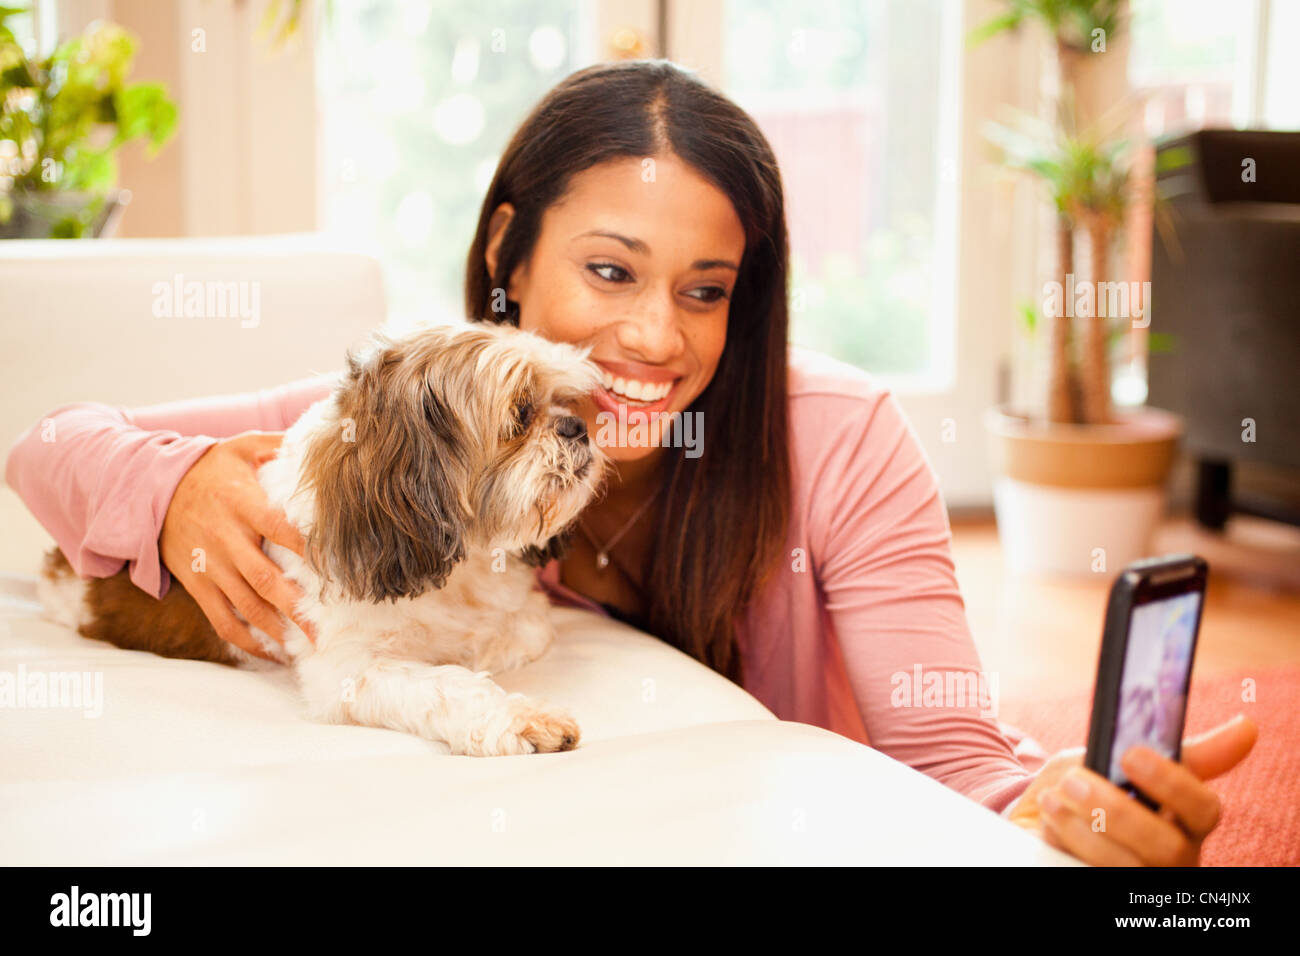 Woman taking picture of herself and her pet dog on smartphone - Stock Image